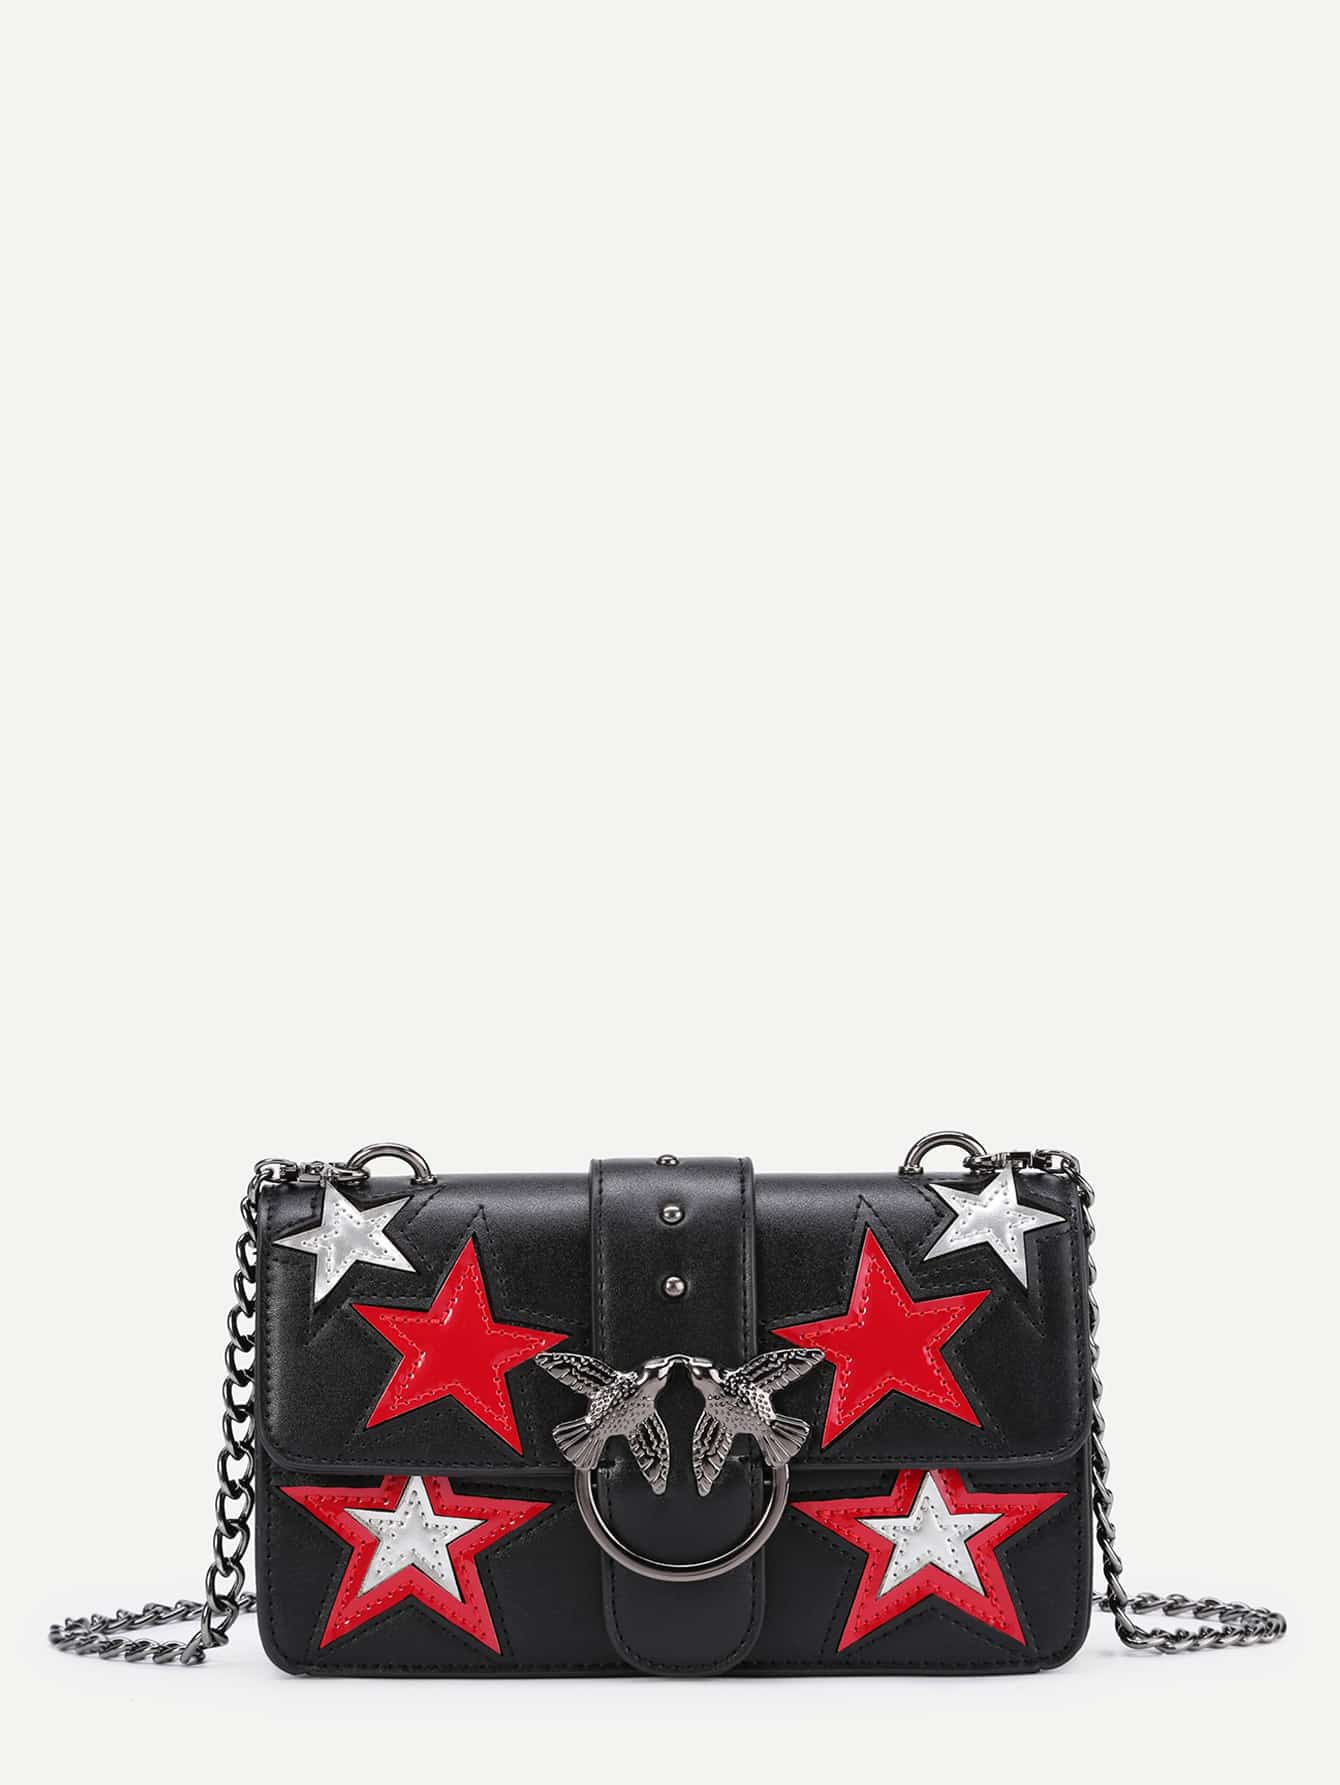 Bird Buckle Star Pattern PU Chain Bag